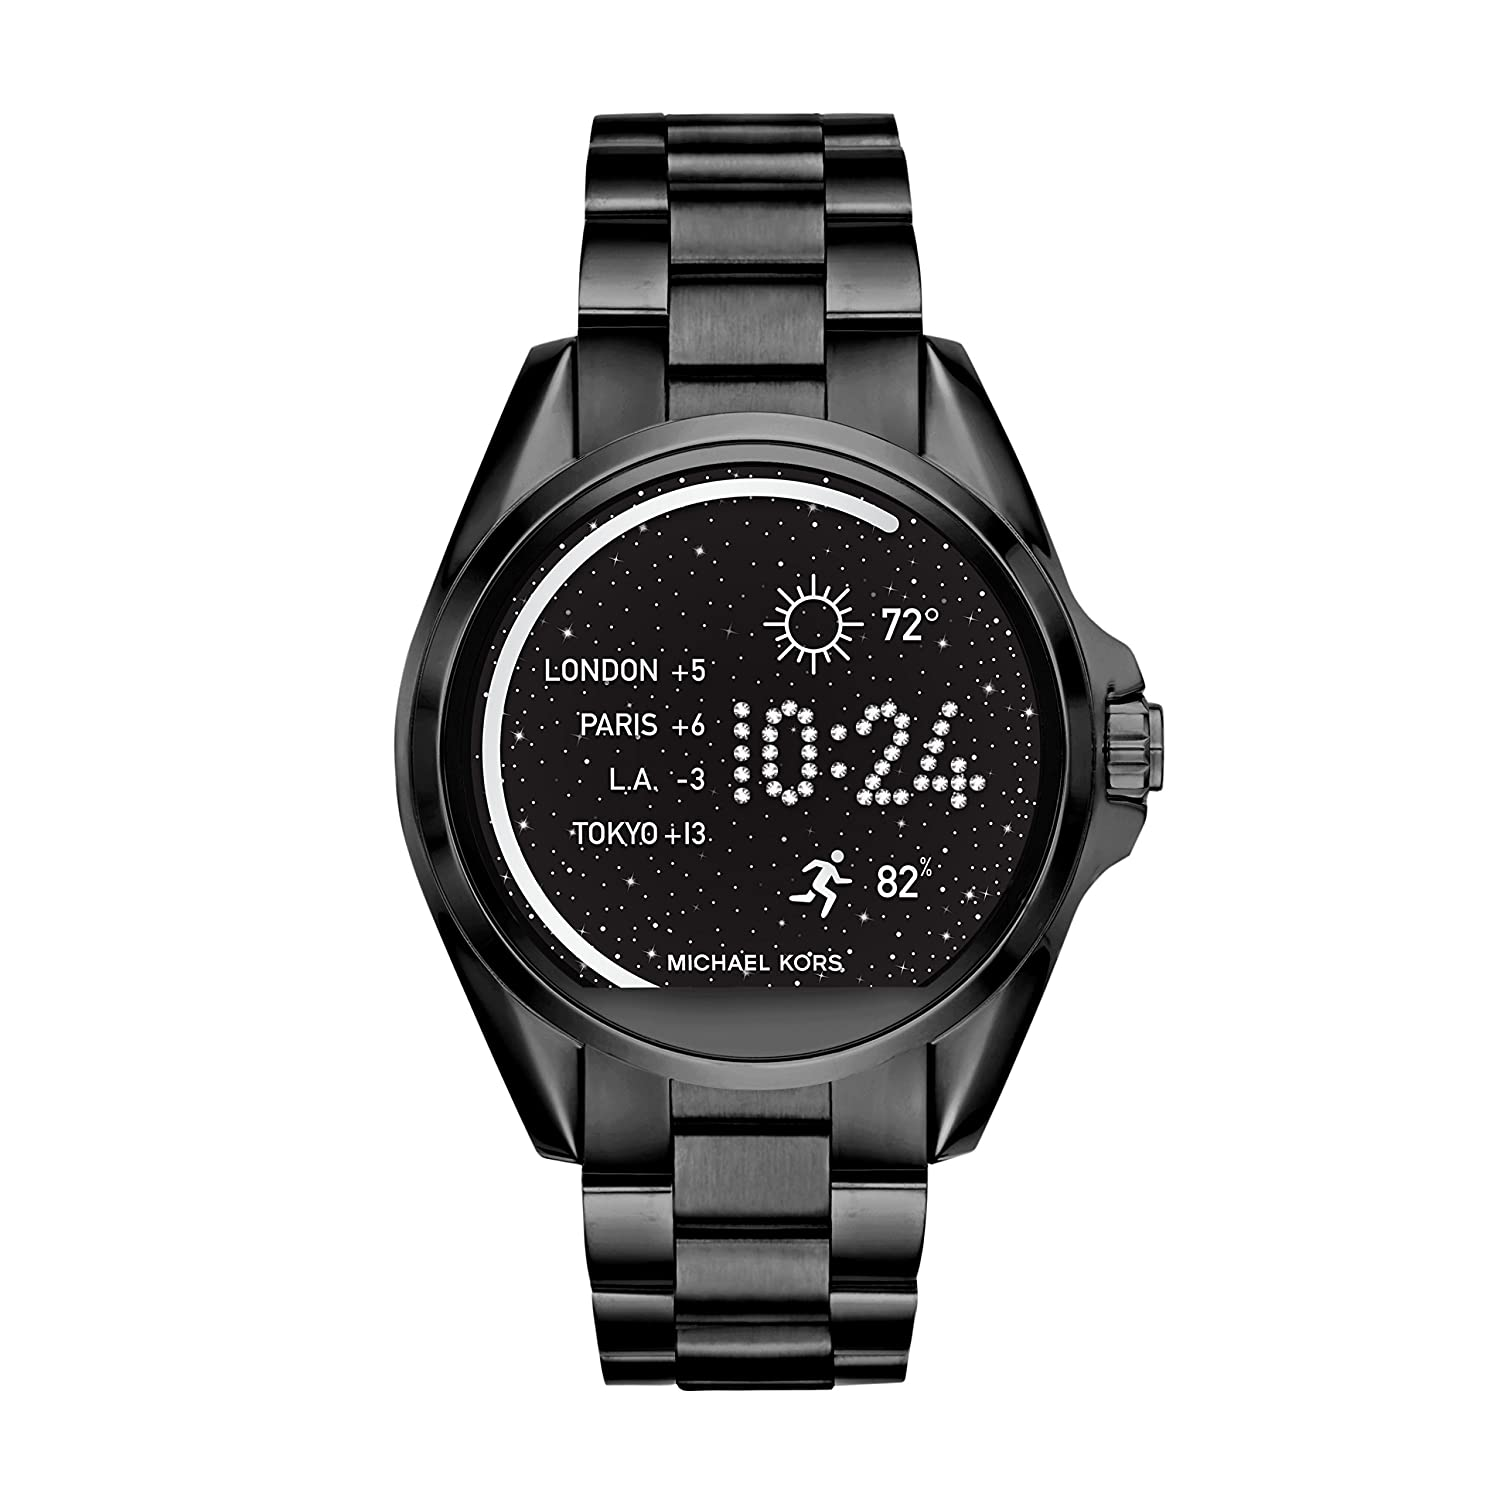 Amazon.com: Michael Kors Bradshaw de acceso IP SmartWatch ...